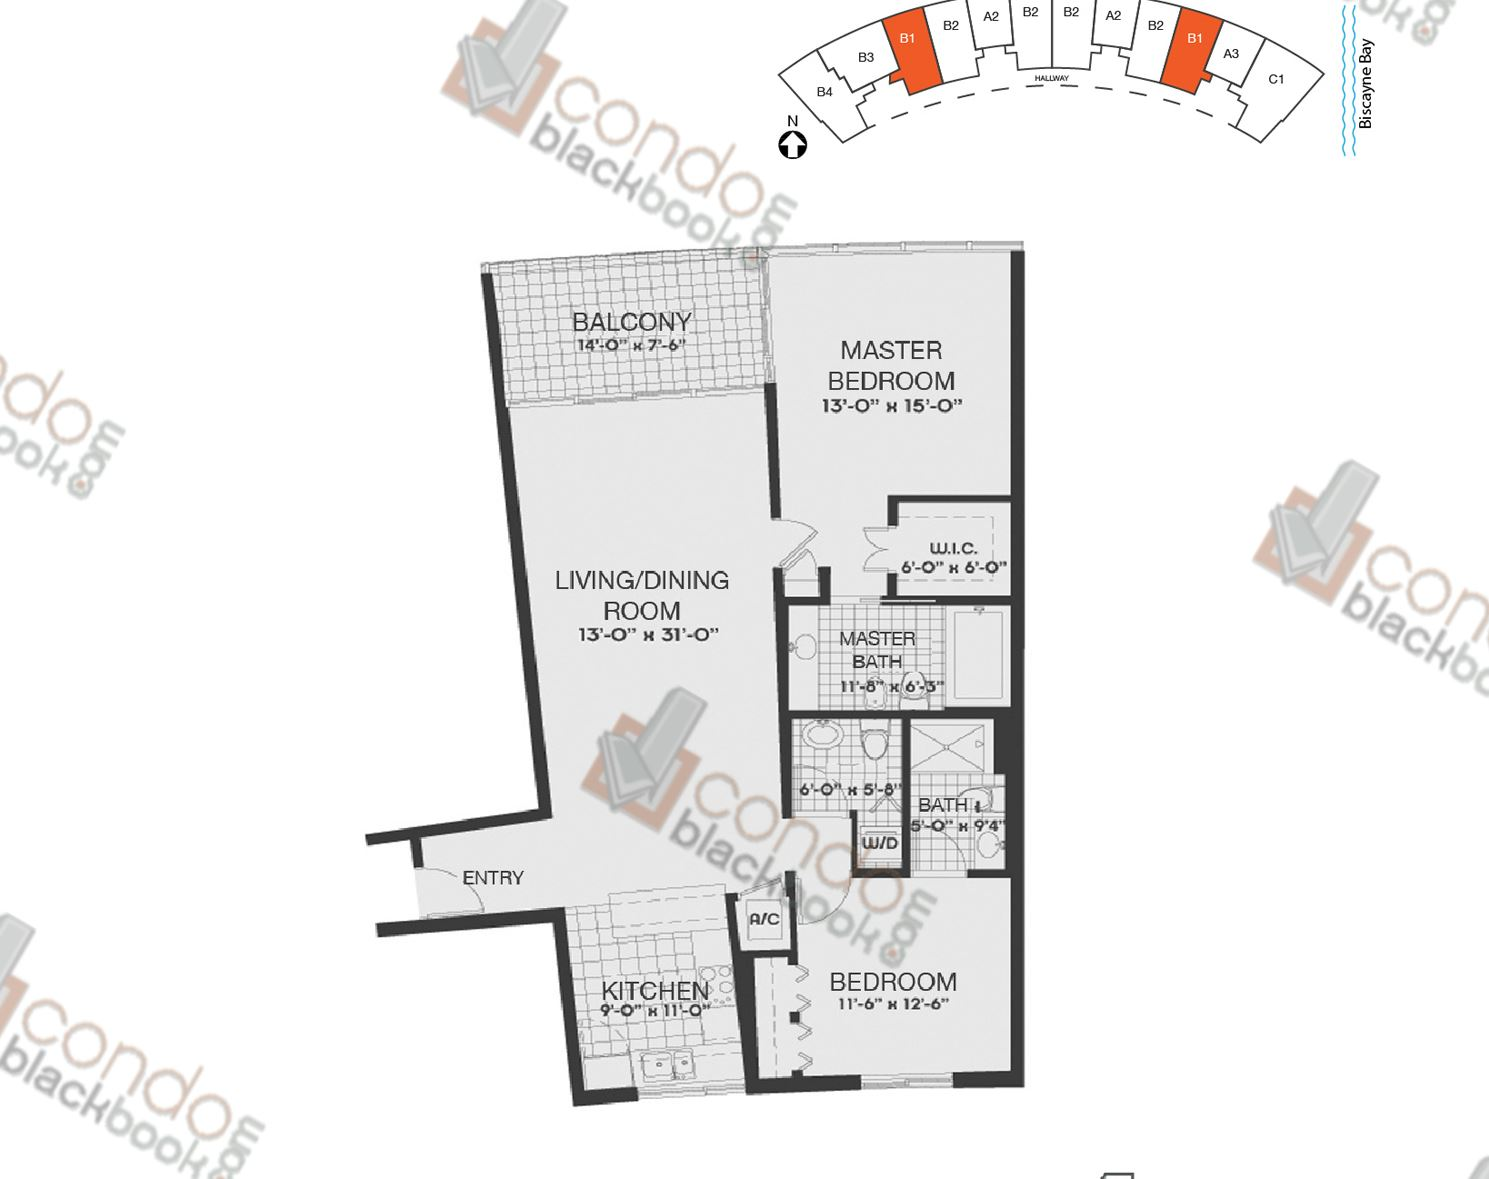 Floor plan for Blue Edgewater Miami, model B1, line 03,10, 2/2.5 bedrooms, 1362 sq ft